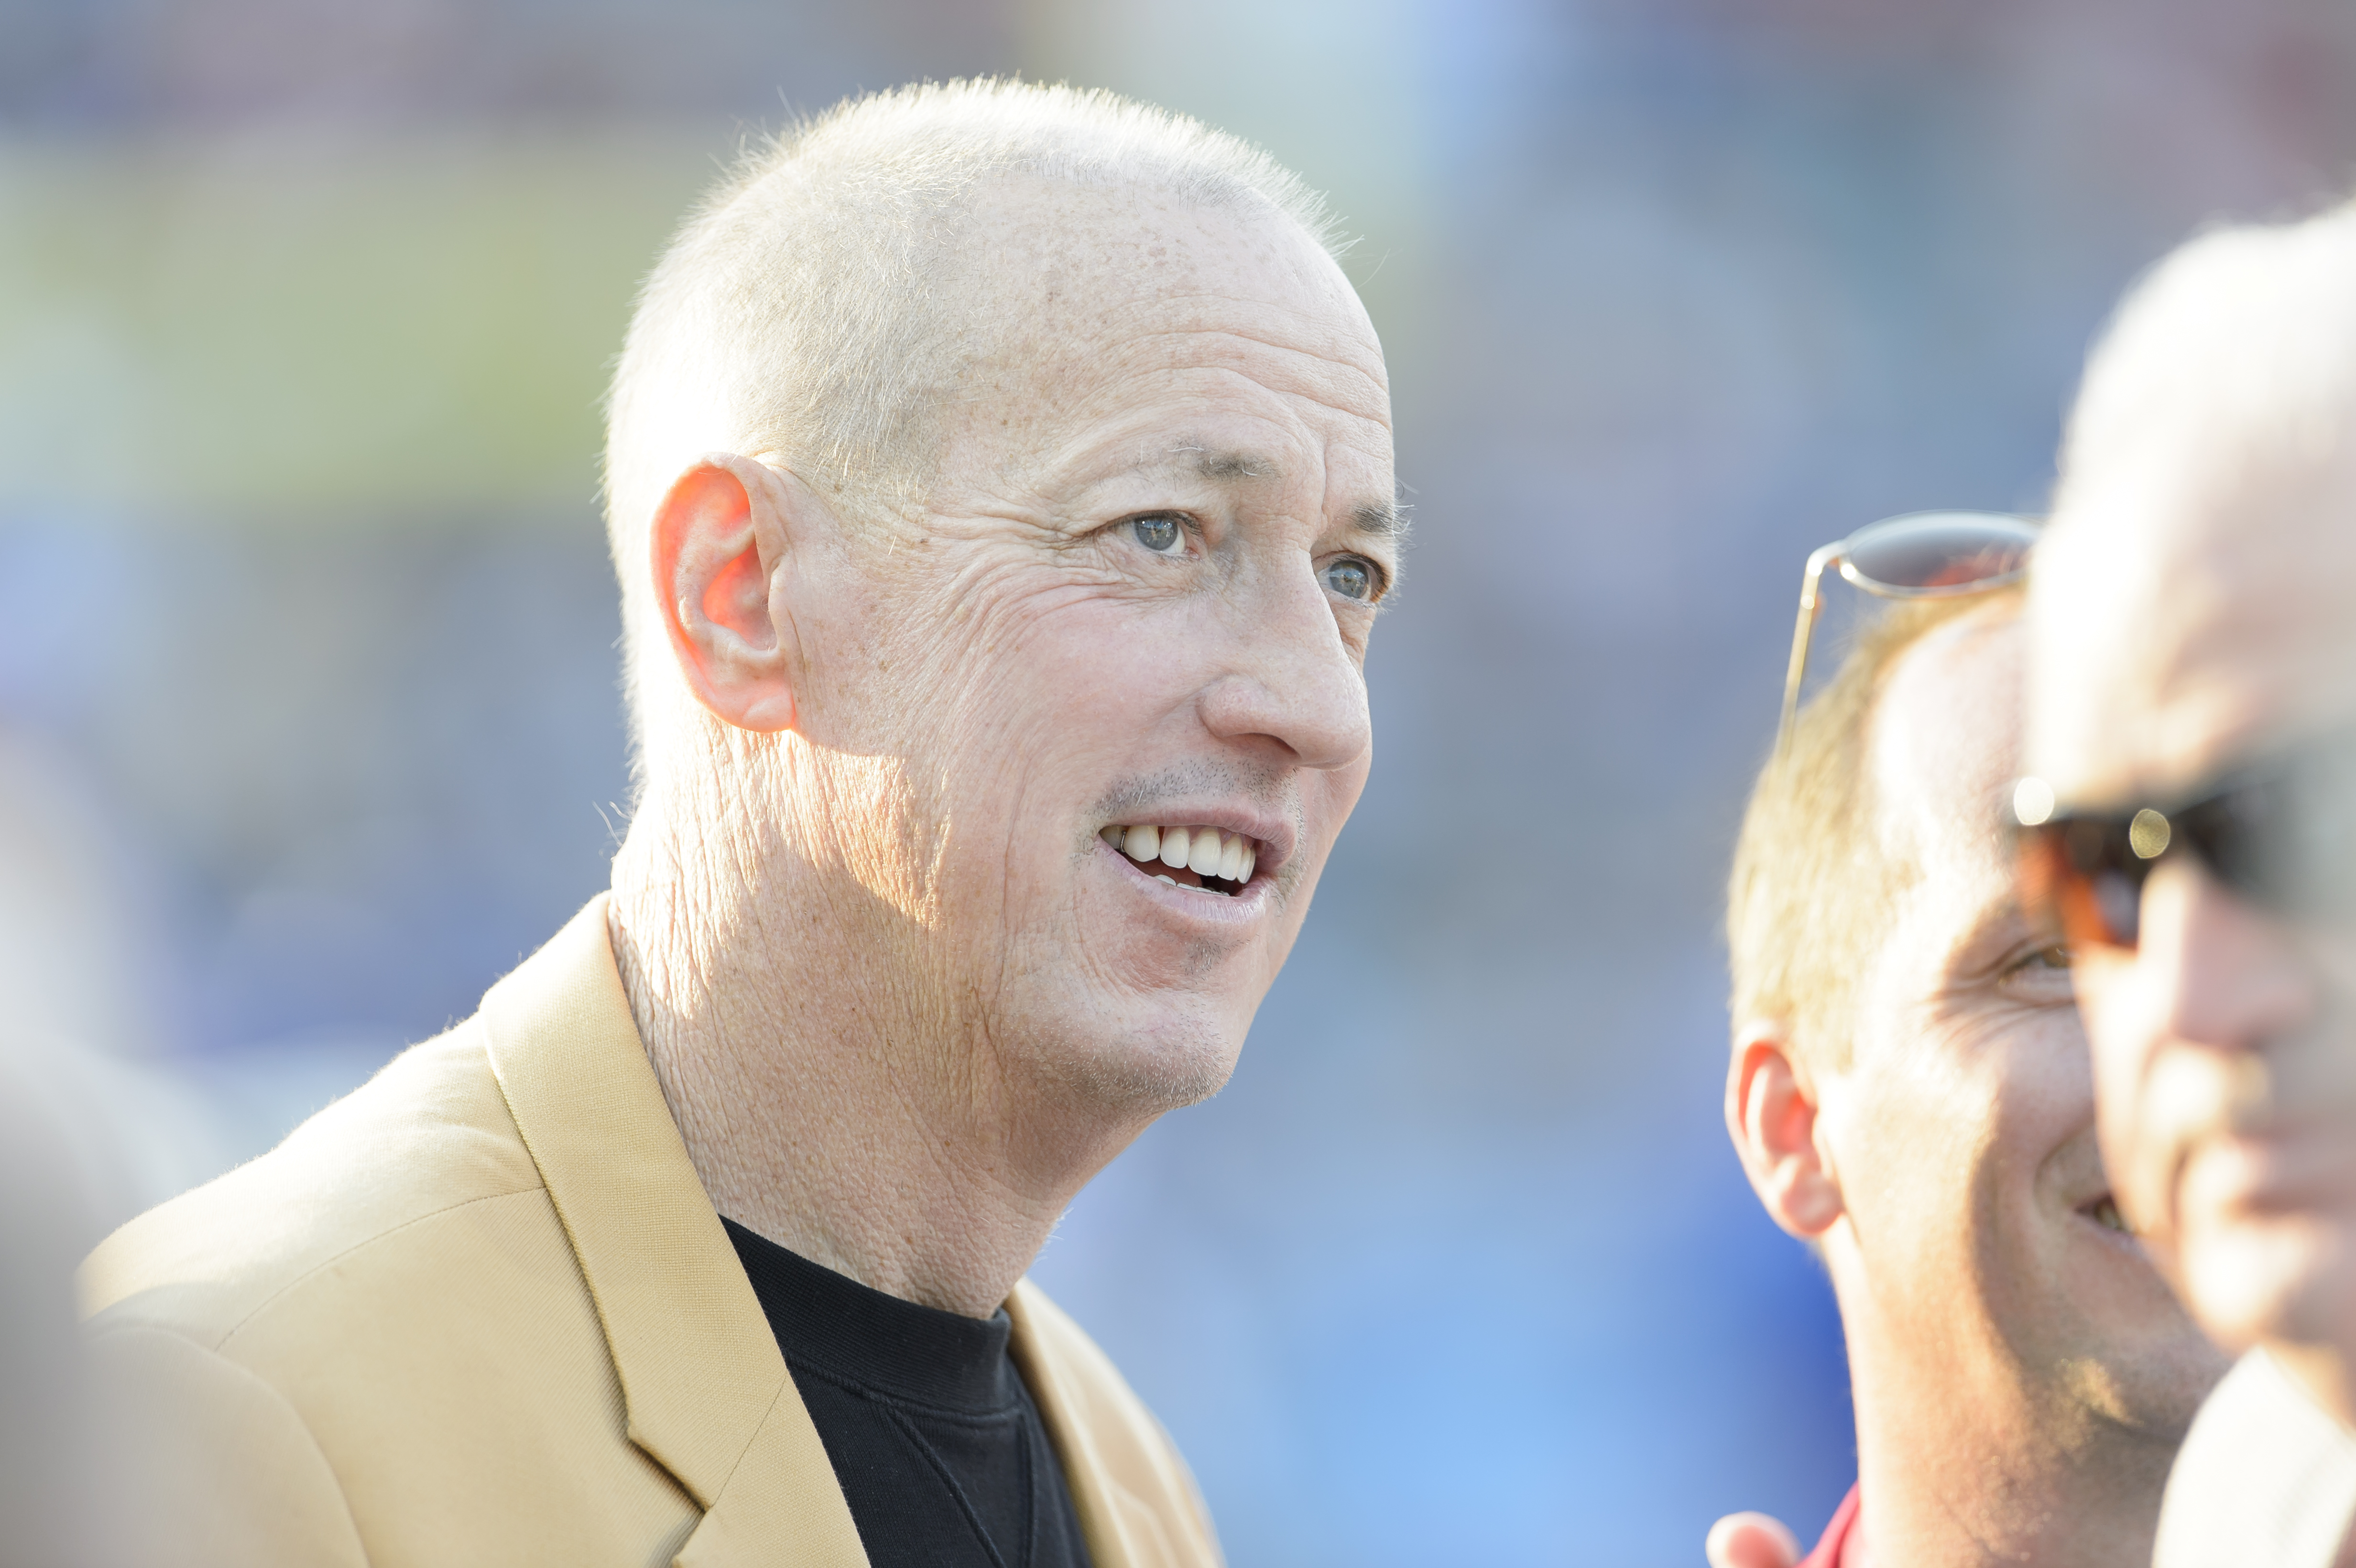 Jim Kelly (pictured) could end up co-owner of the Bills with Bon Jovi.